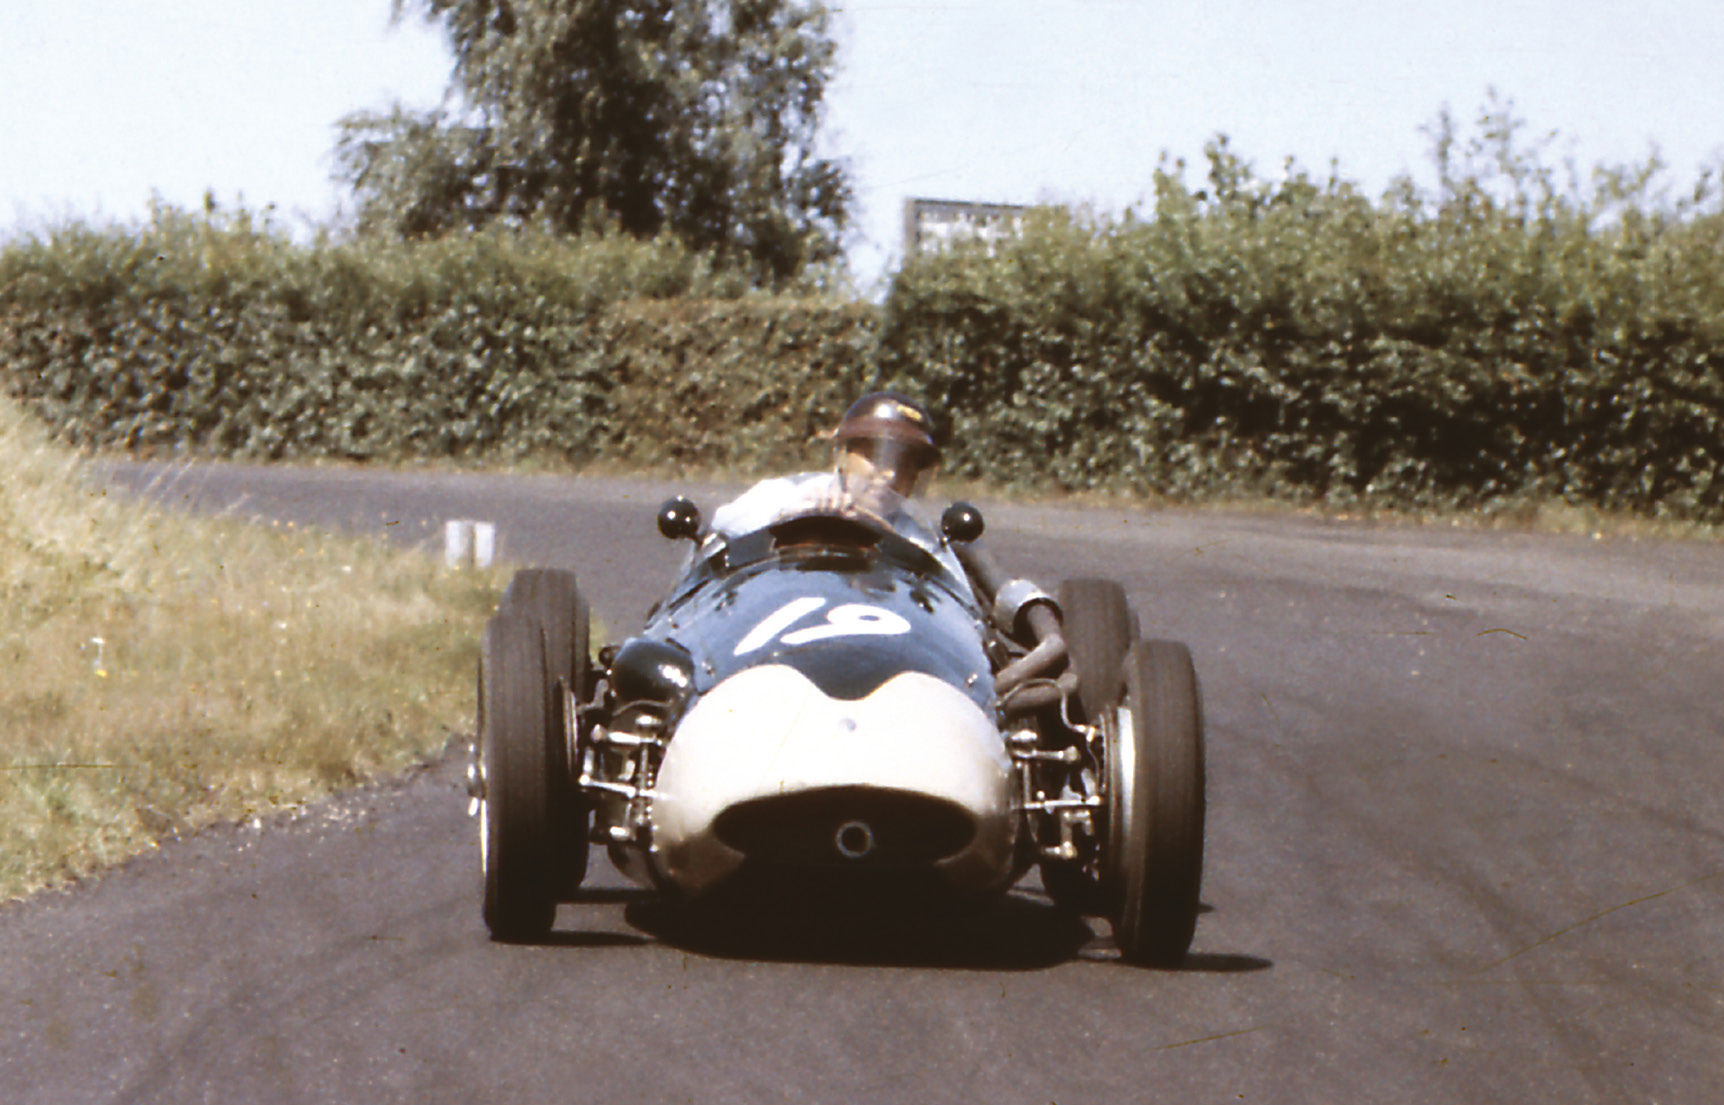 While Fangio stole the headlines with a stellar recovery drive, Horace Gould fared less well with his Maserati 250F, retiring after one lap